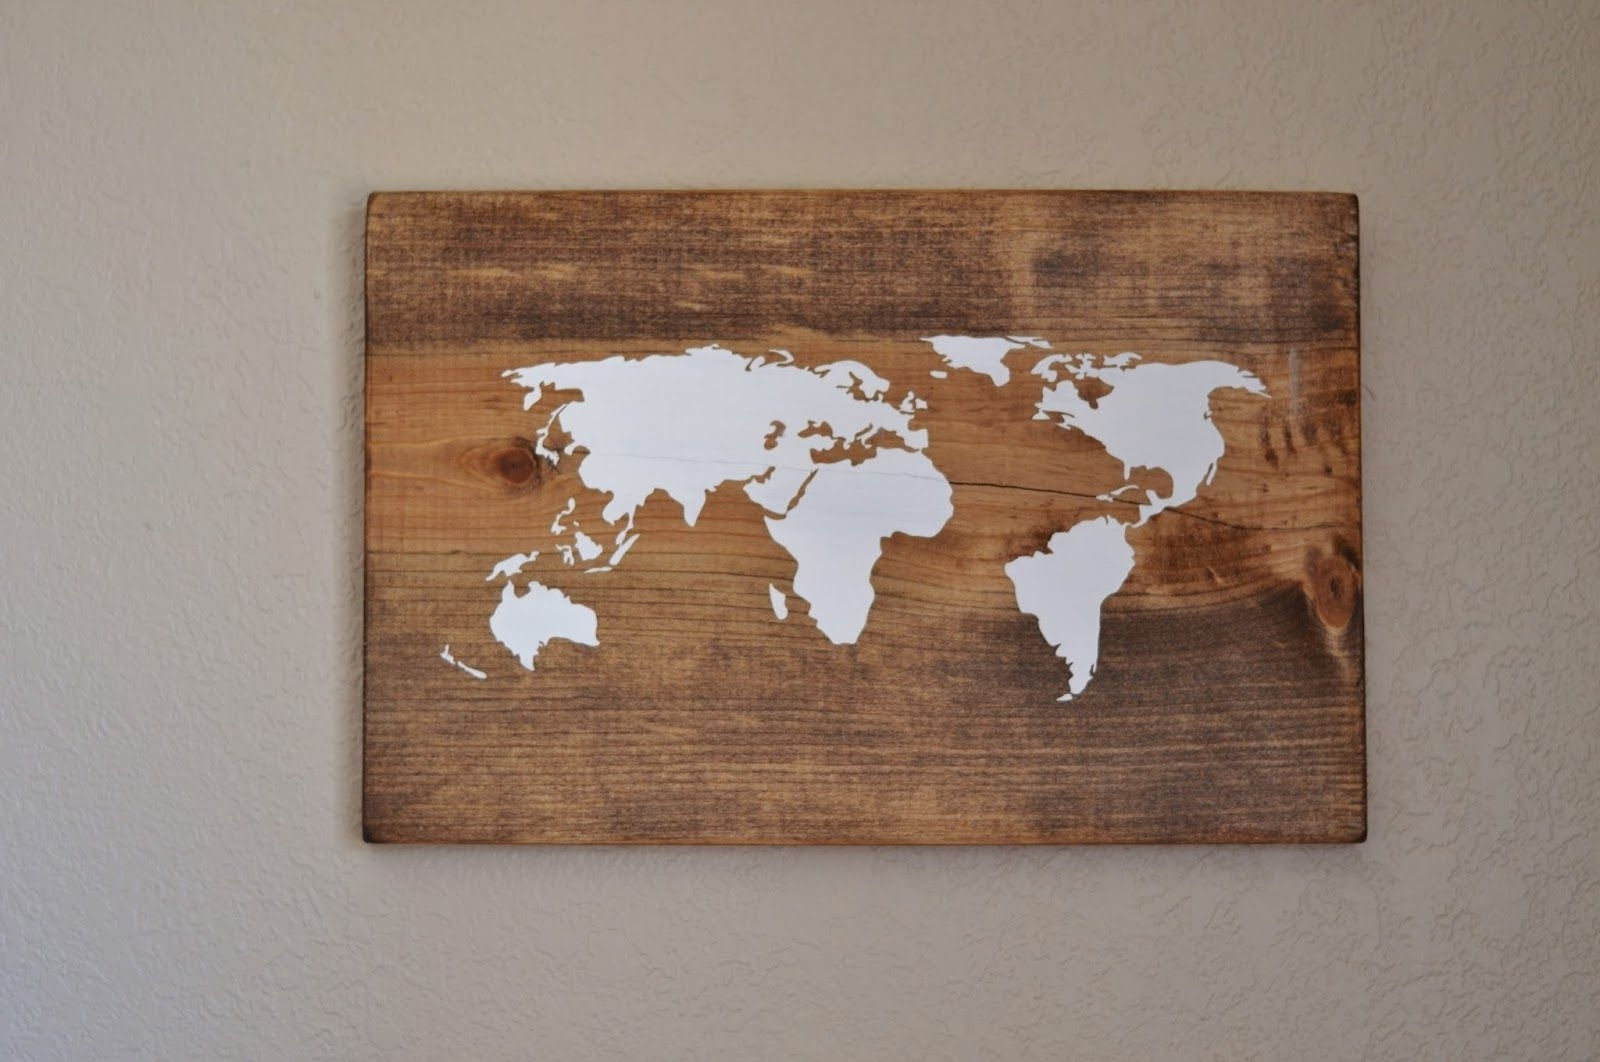 Diy World Map Wall Art Throughout Most Recent All Things Bright And Beautiful: Diy World Map Wall Art – Very Cool (Gallery 3 of 20)